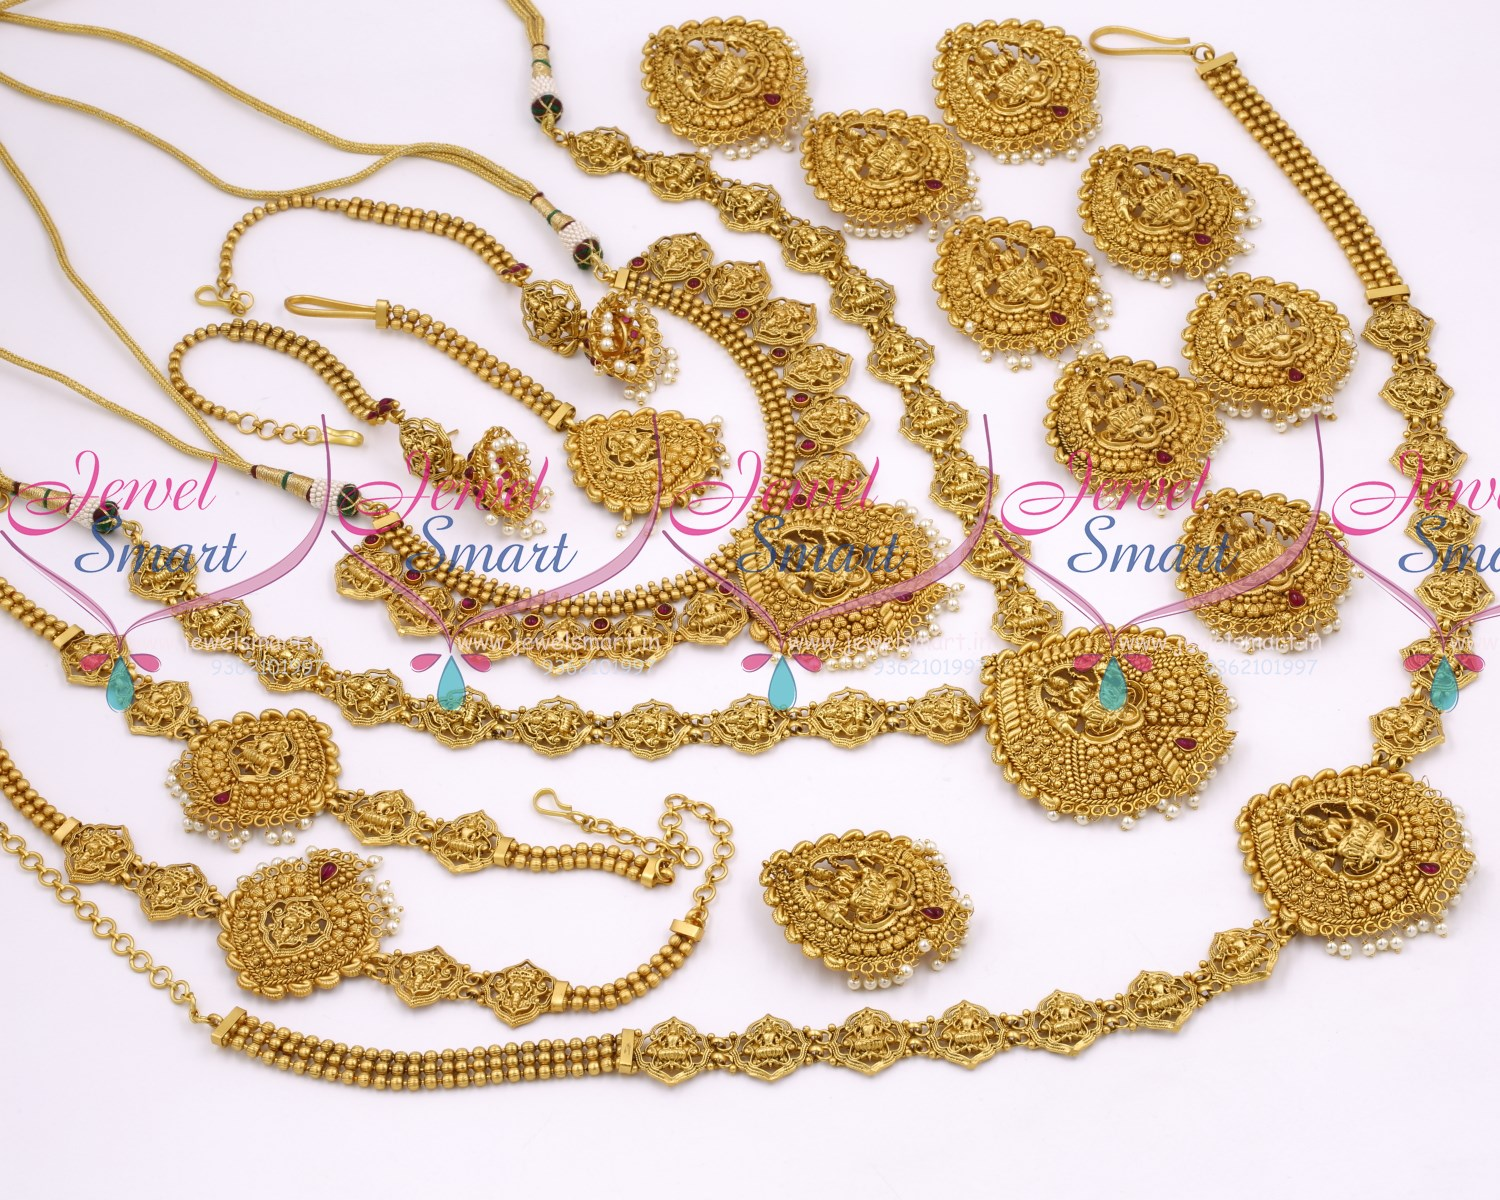 BR10359 Nagas South Indian Temple Gold Jewellery Inspired Full Bridal Wedding Design Collections